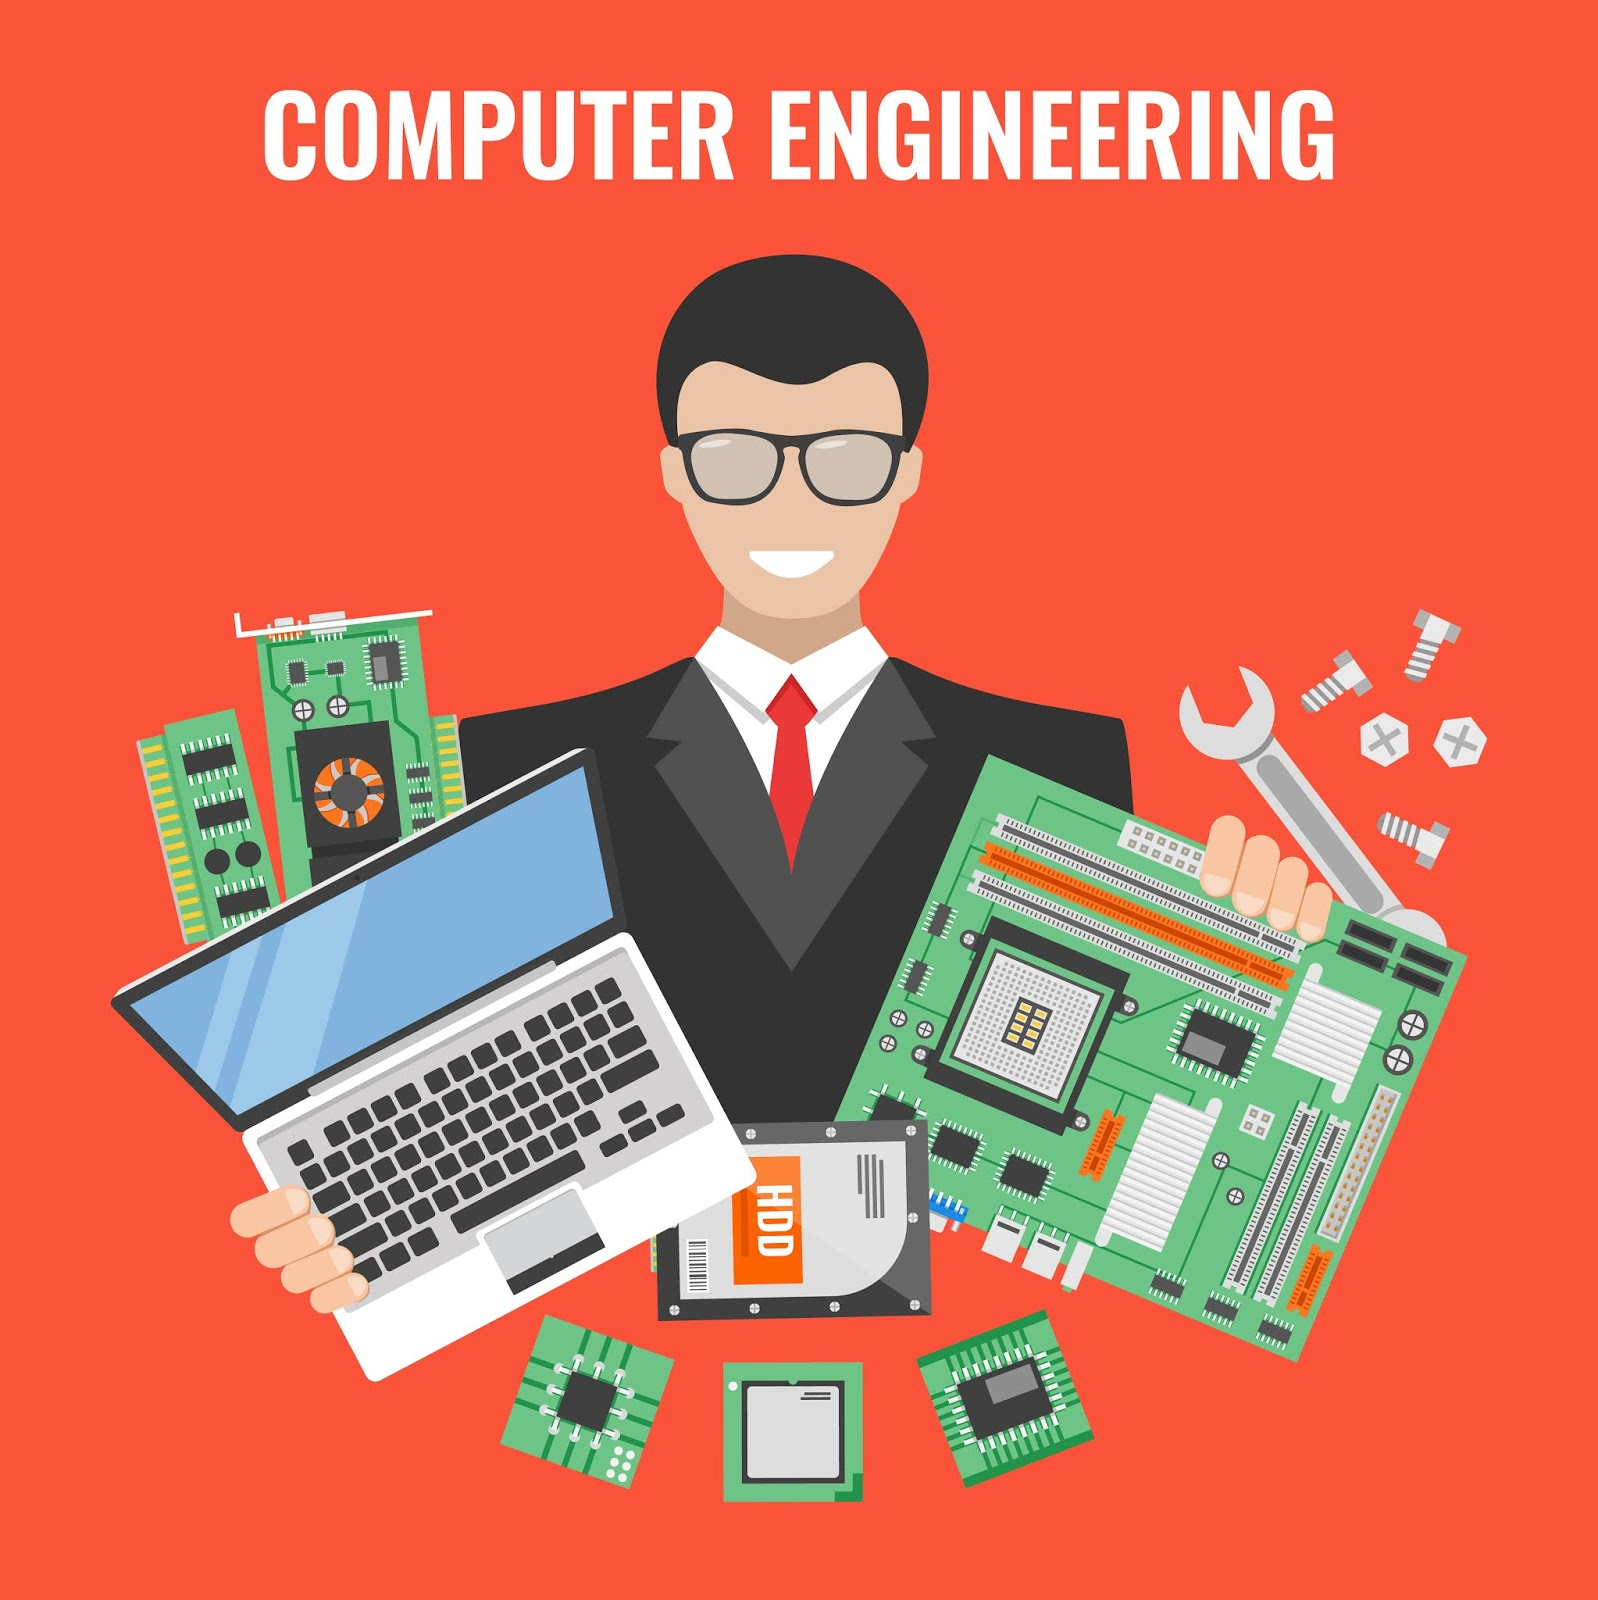 Computer Engineering Flyer With Man Suit With Laptop Tools Repair Vector Illustration Free Download Vector CDR, AI, EPS and PNG Formats